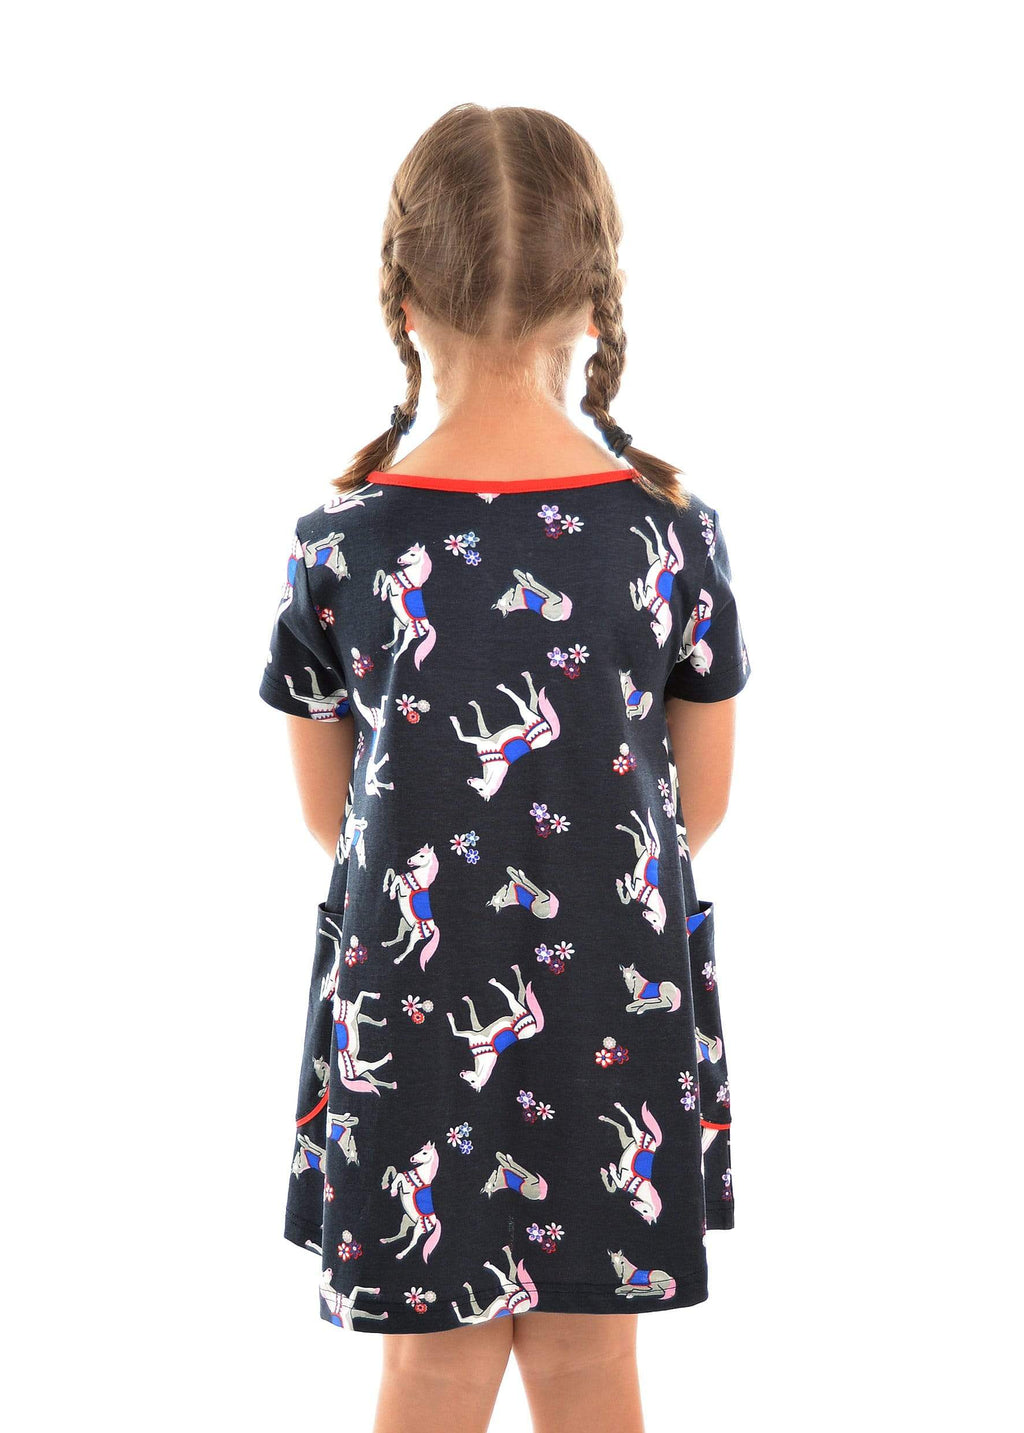 Gympie Saddleworld & Country Clothing DRESS Thomas Cook Girls Horse Print Dress